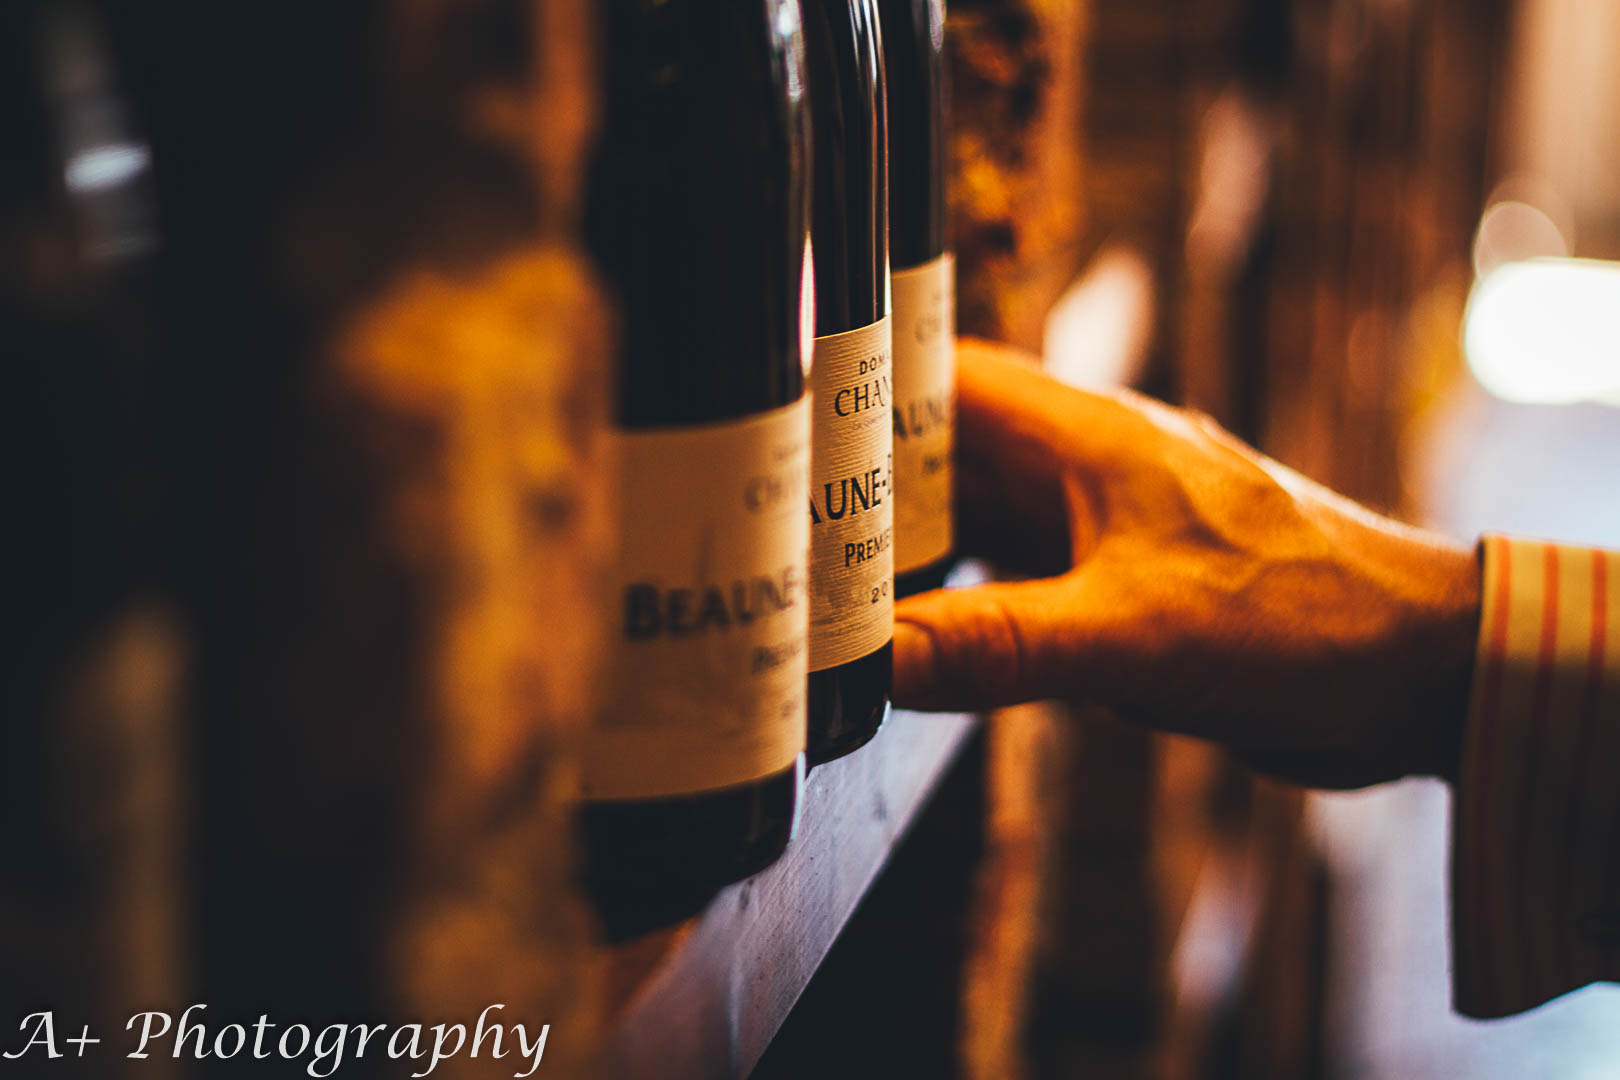 Moody product photography: A hand reaching for a wine bottle on a shelf